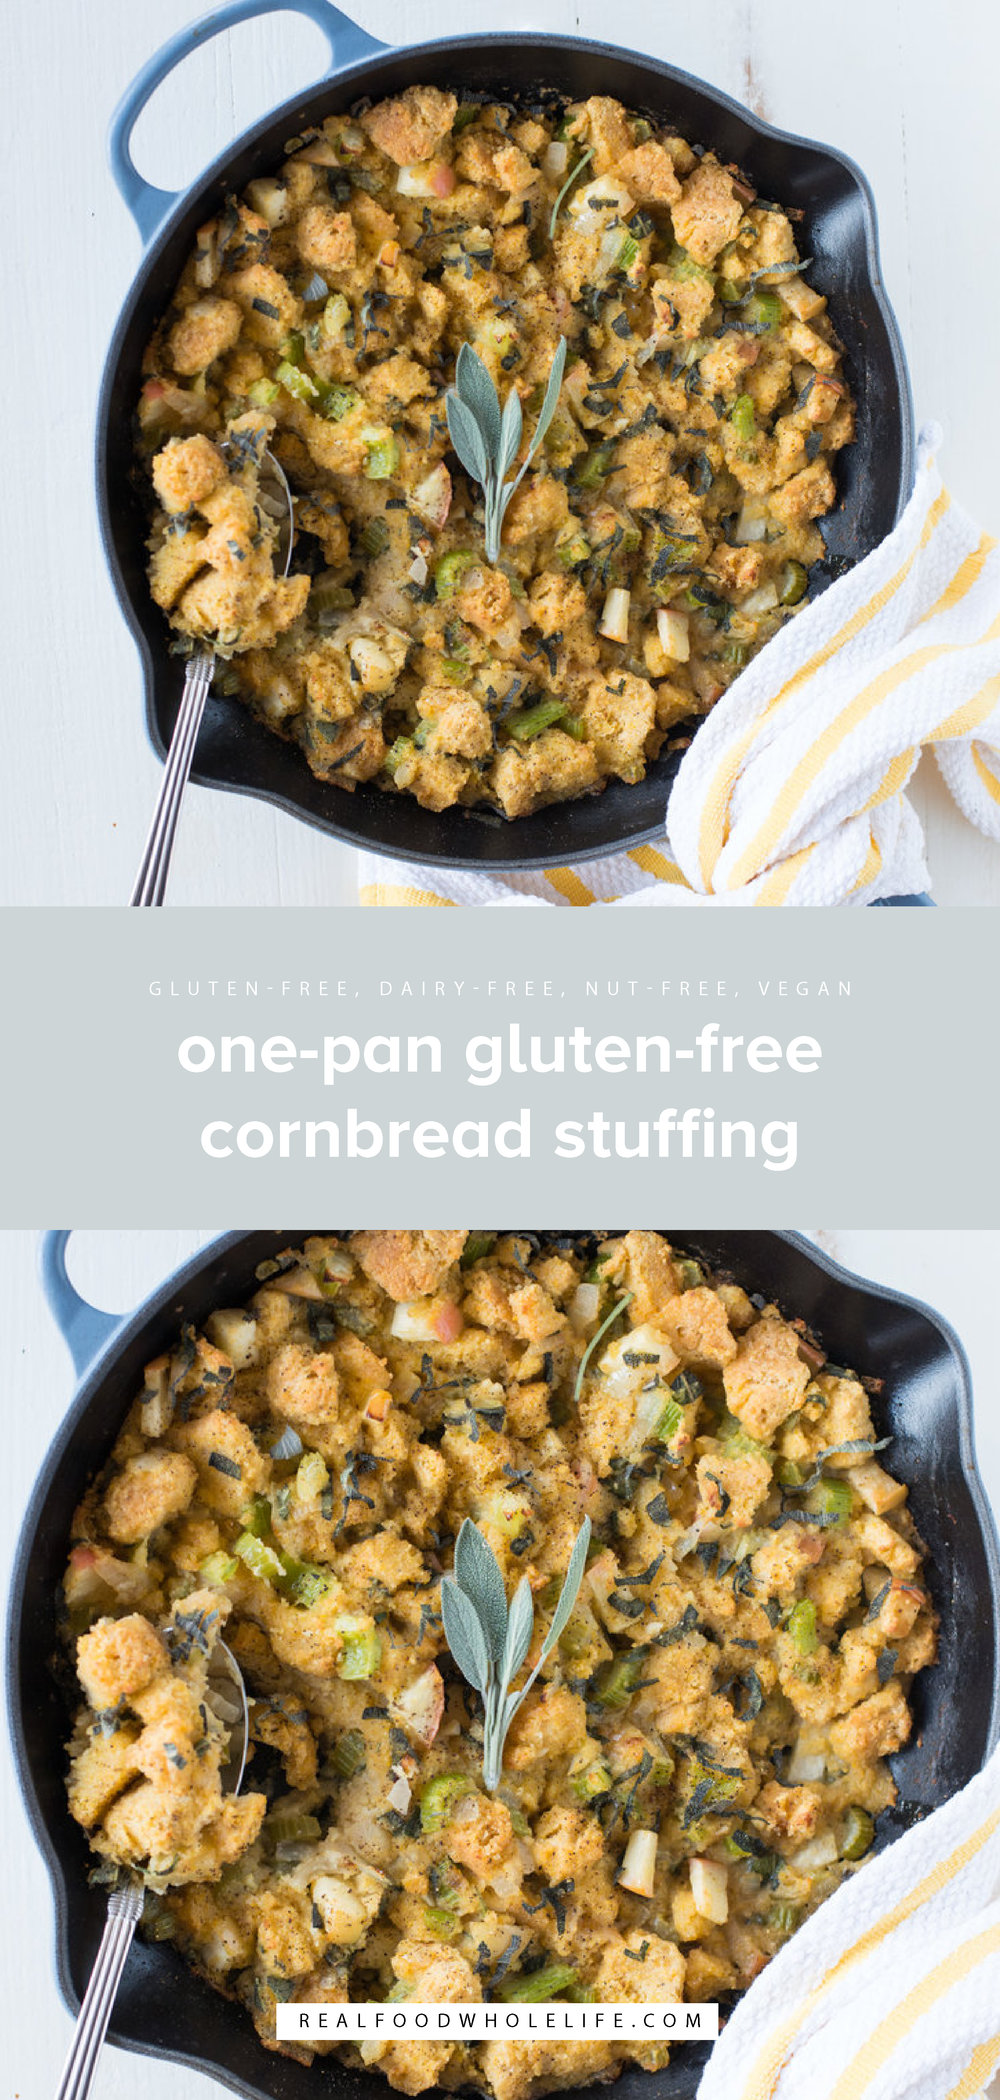 Simple to make, One-Pan Cornbread Stuffing (Gluten-Free, Dairy-Free) comes together easily and tastes amazing! #realfoodwholelife #glutenfree #dairyfree #nutfree #vegan #vegetarian #healthyrecipe #recipe #dinner #healthyside #lunch #easyrecipe #quickrecipe #onepan